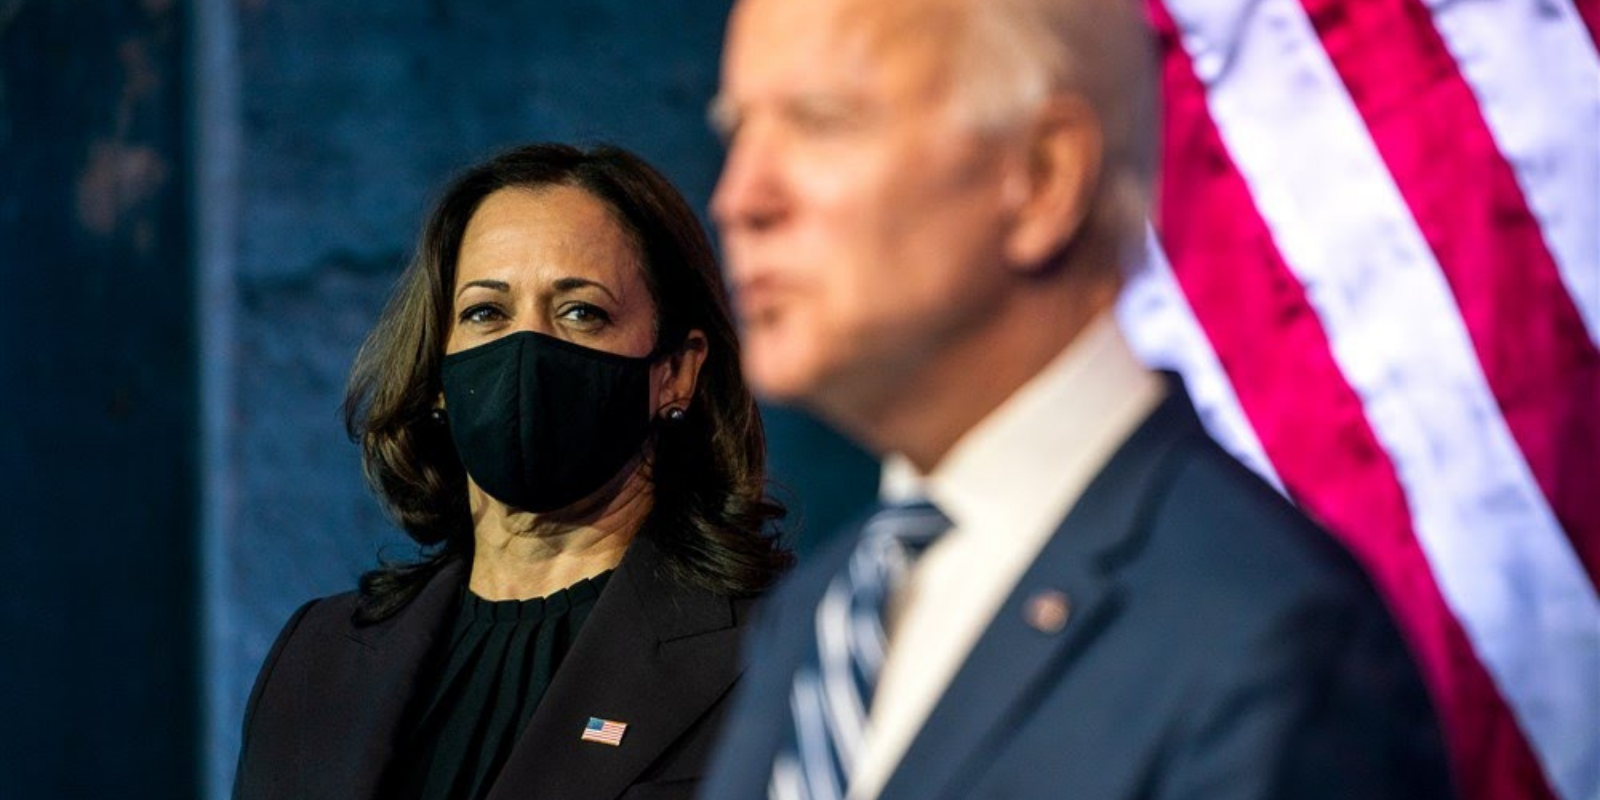 Kamala Harris slammed Trump for border policies, now she's in charge of Biden's growing crisis